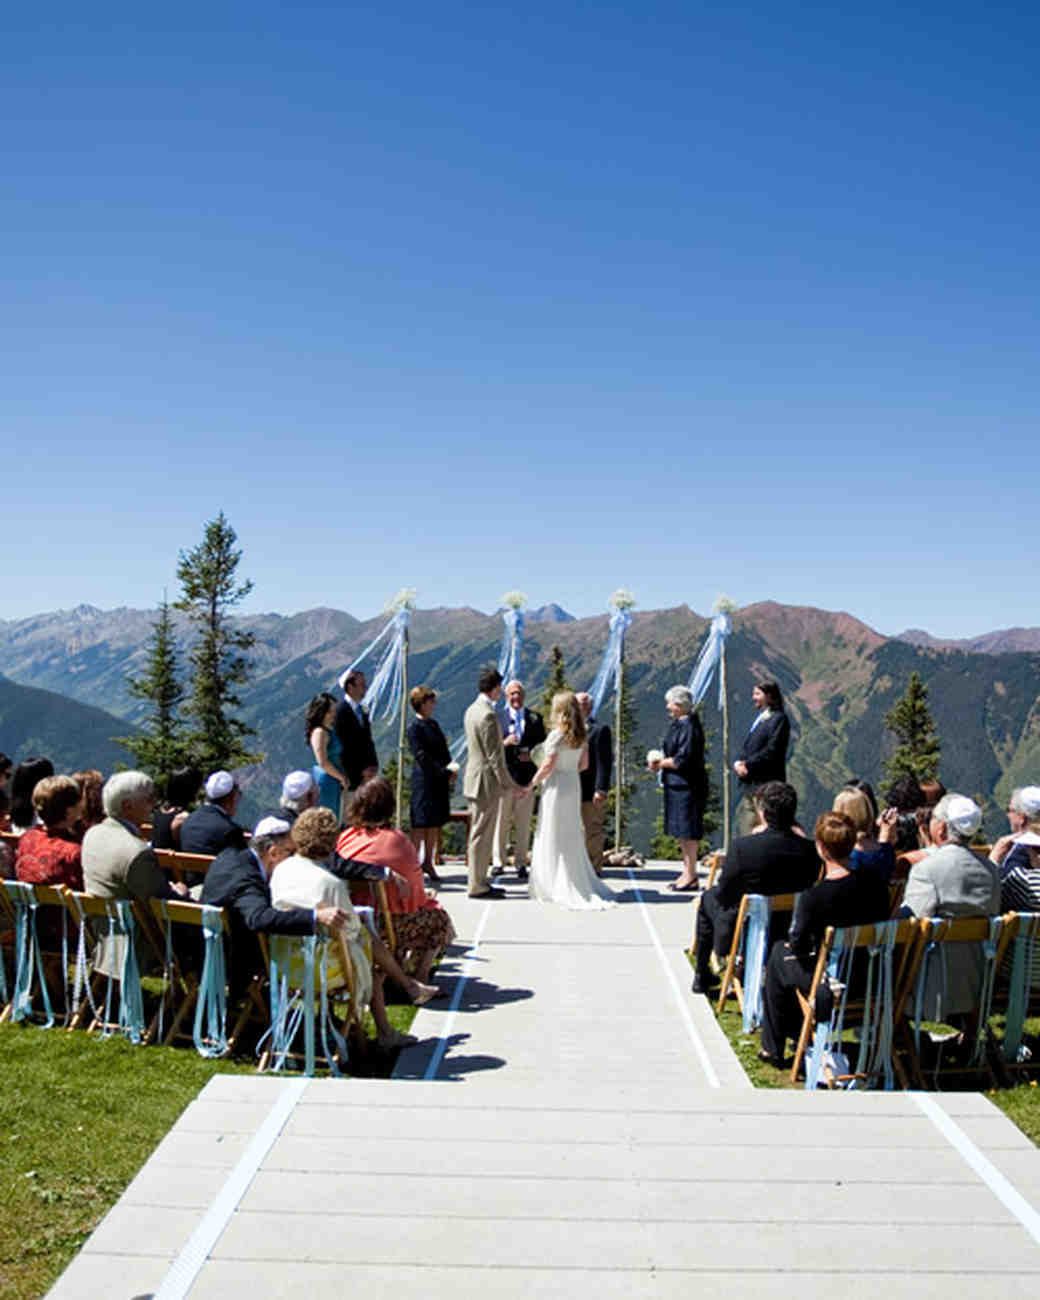 Wedding Ceremony Venues: 7 Memorable Places Where You Can Exchange Vows In The